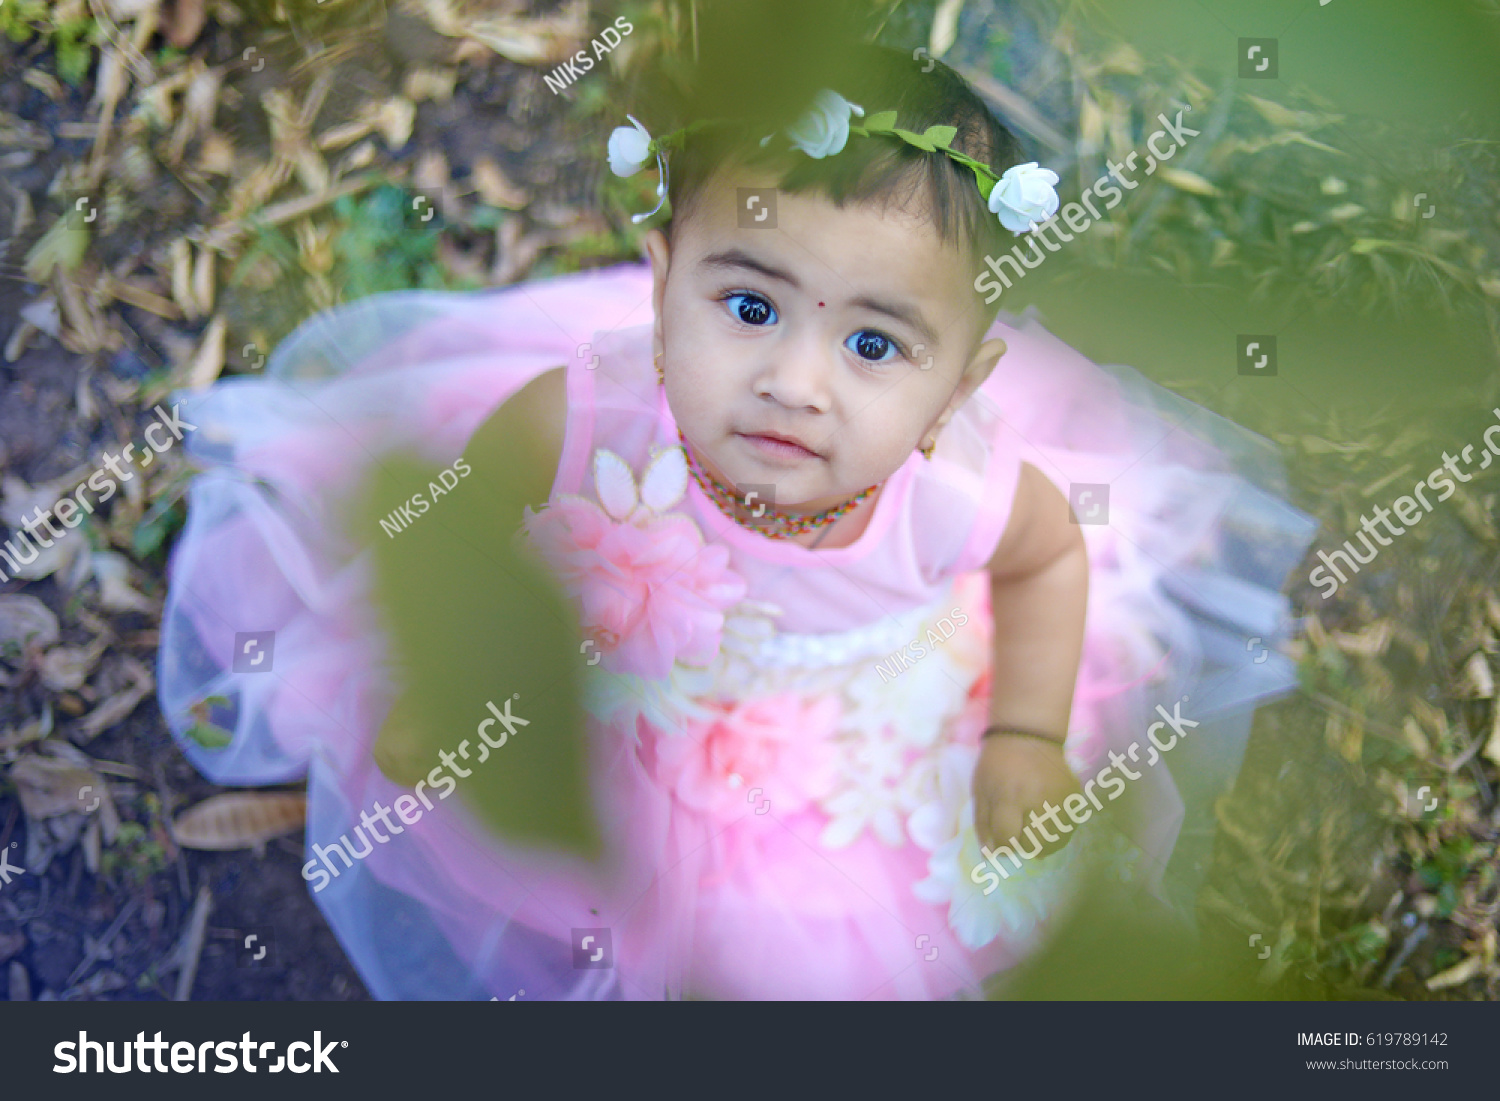 cute indian baby girl stock photo (edit now) 619789142 - shutterstock